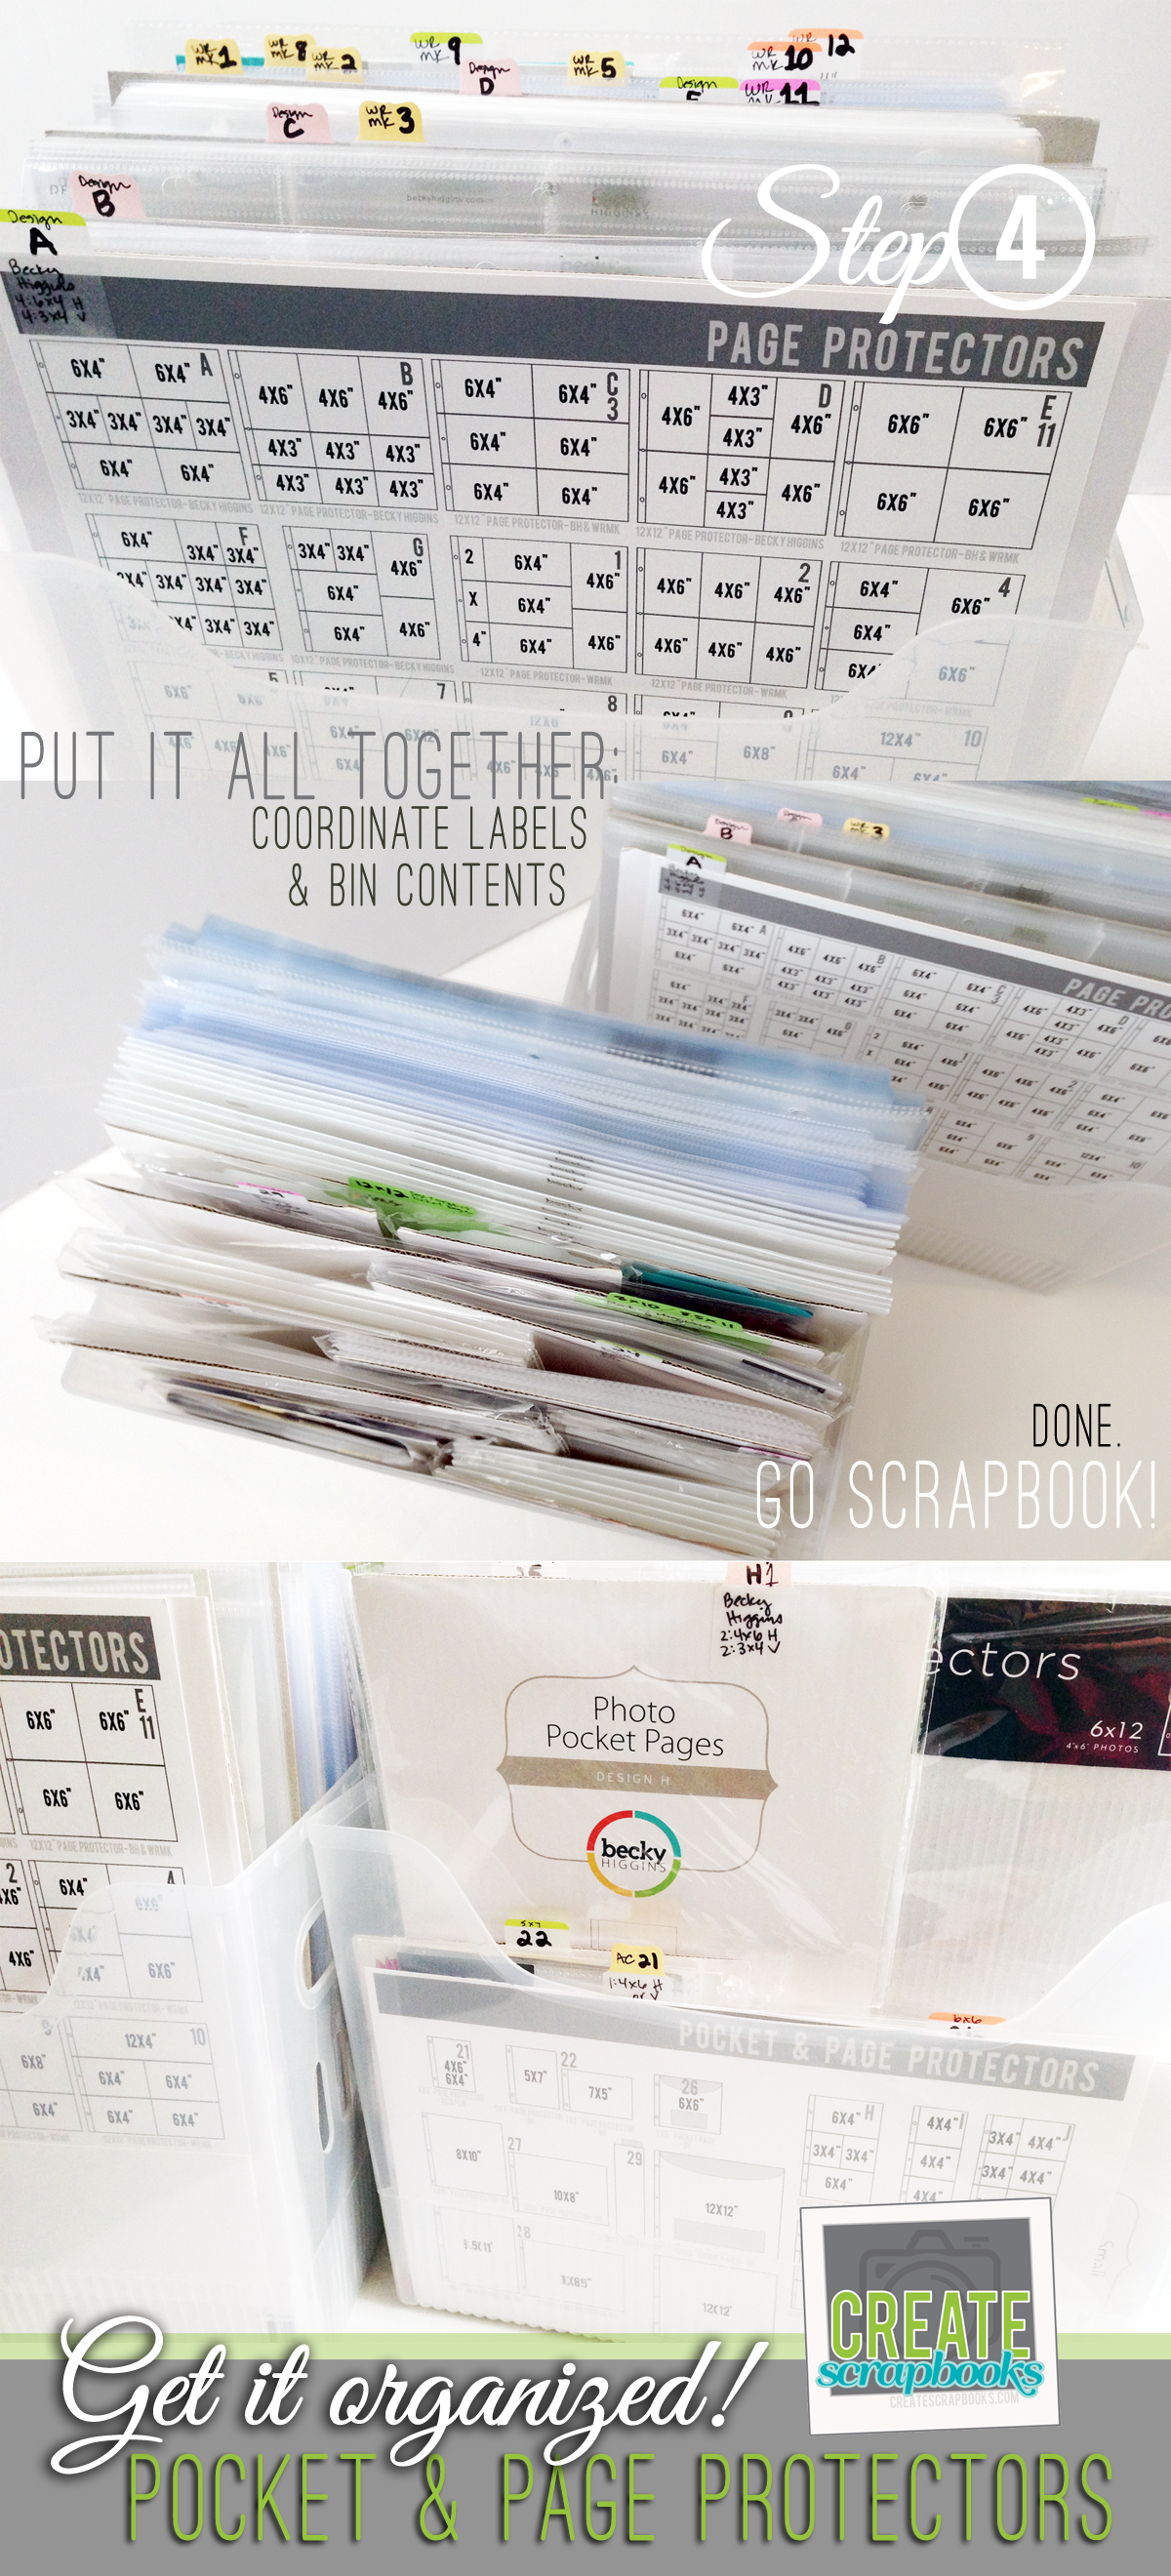 AFTER - In 4 EASY steps createscrapbooks.com gives you step-by-step instructions on how to get your Project Life pocket and page protectors organized for easy scrapbooking!